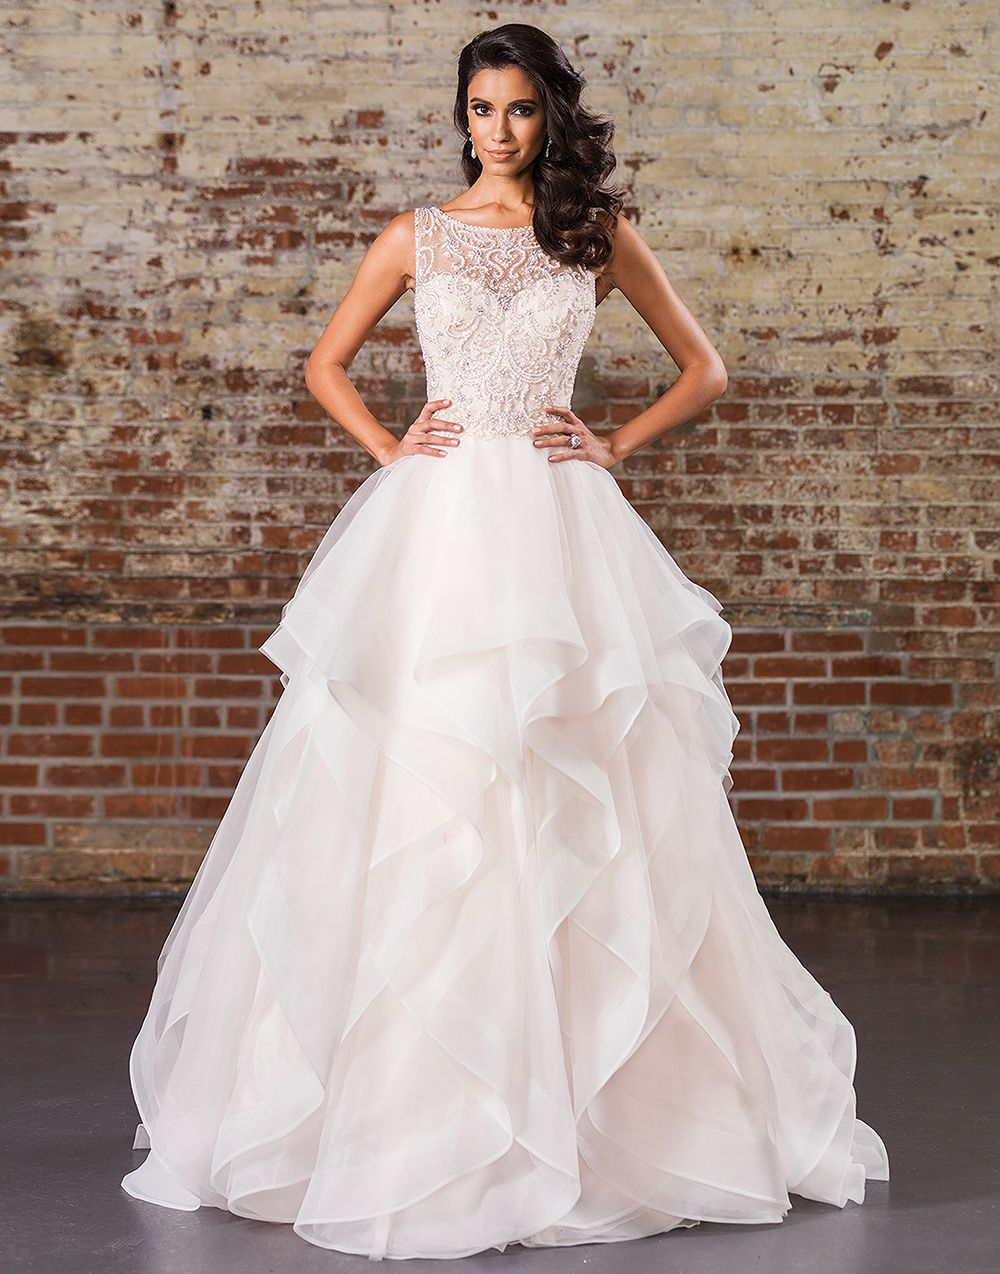 Justin Alexander signature wedding dresses style 9847 | Pinterest ...